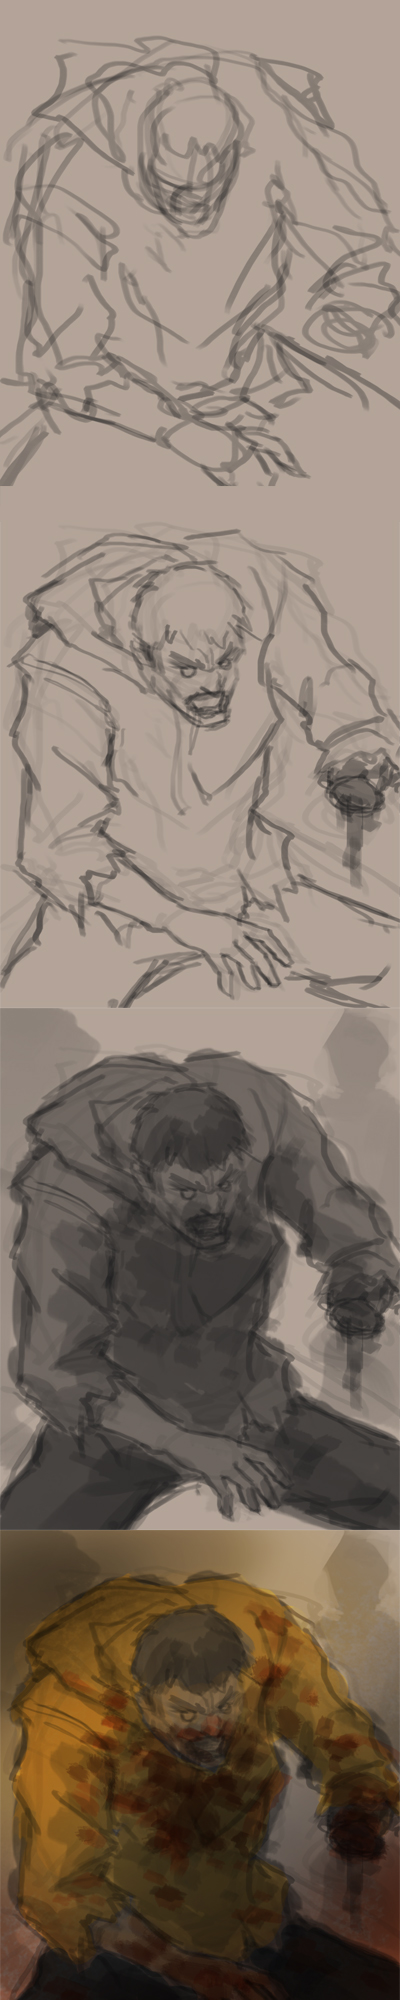 drawing zombie step by step